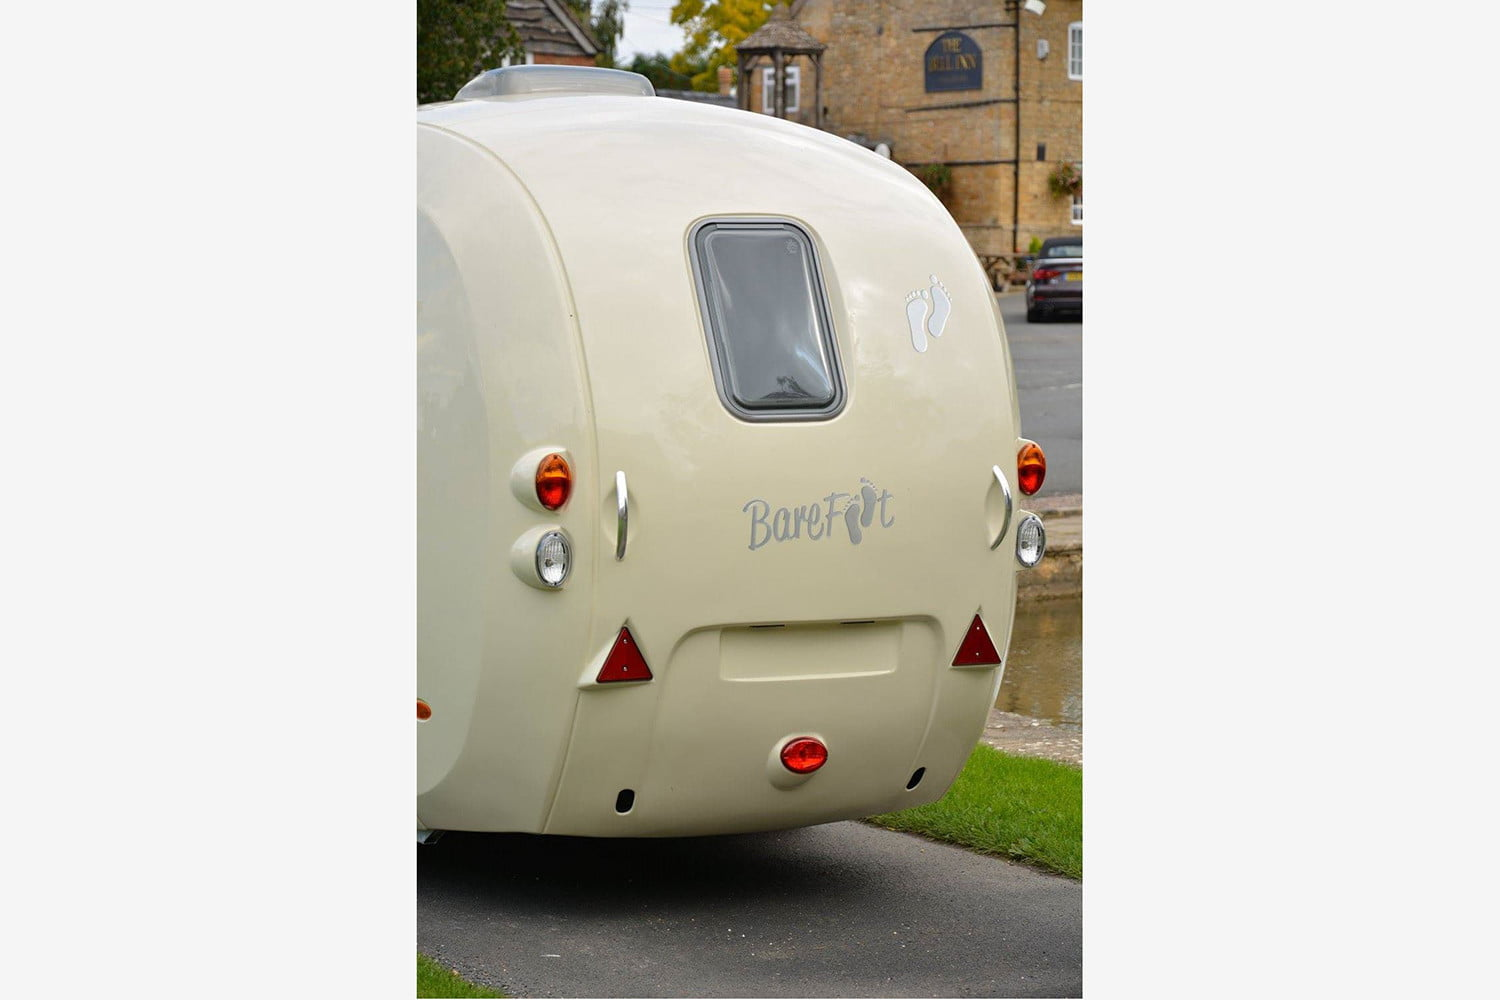 barefoot caravan makes cool curved campers 007